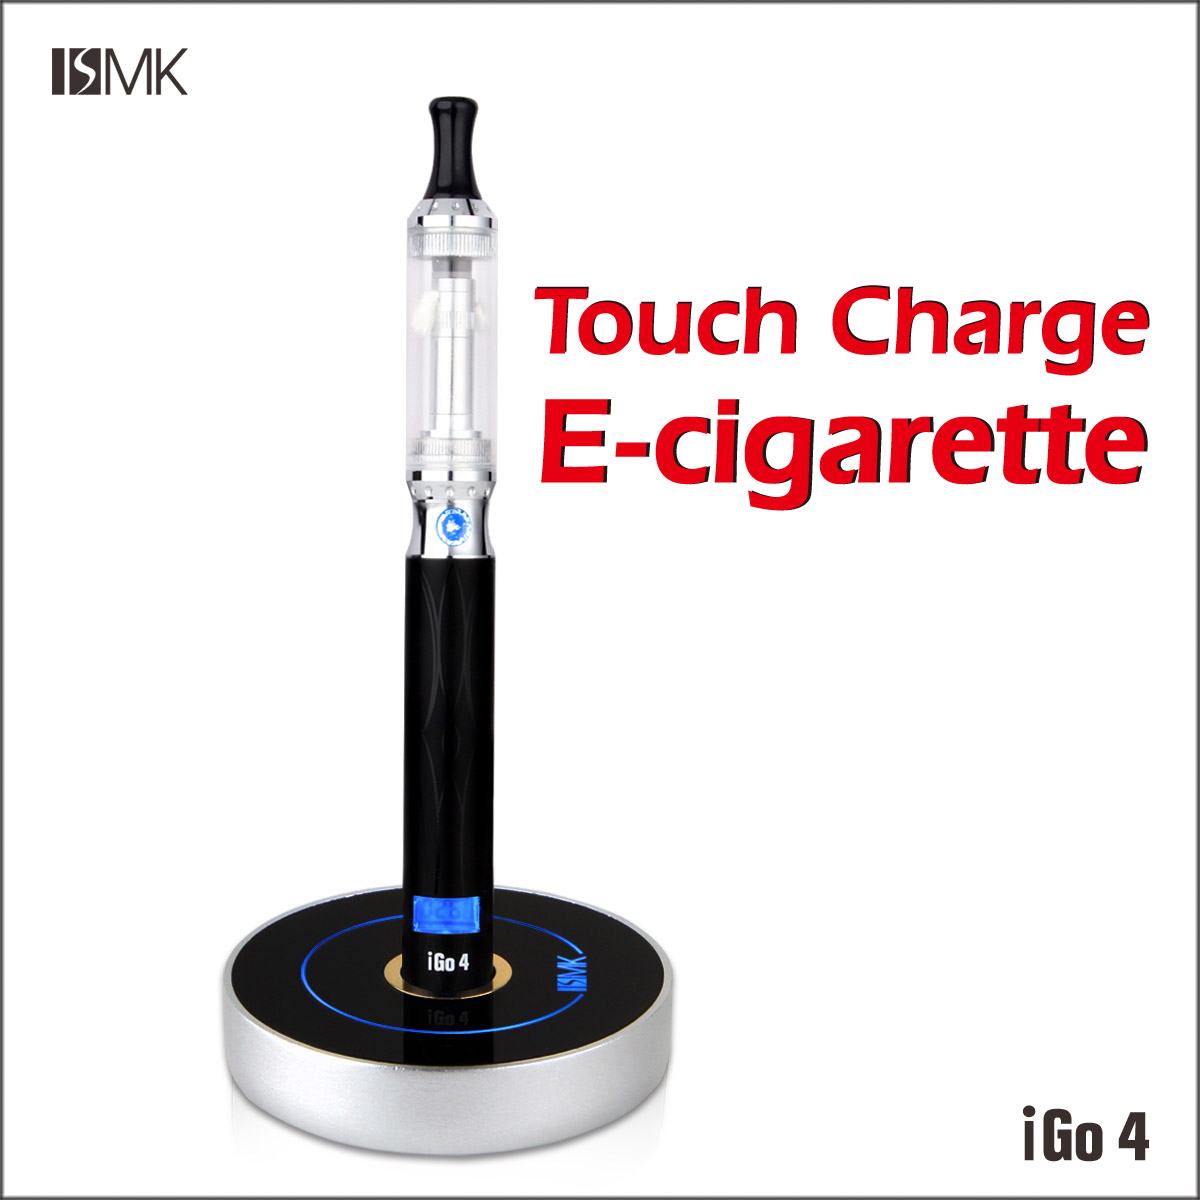 New products christmas 2013 easy smoker electronic cigarette iGo4 best electric cigarette brand